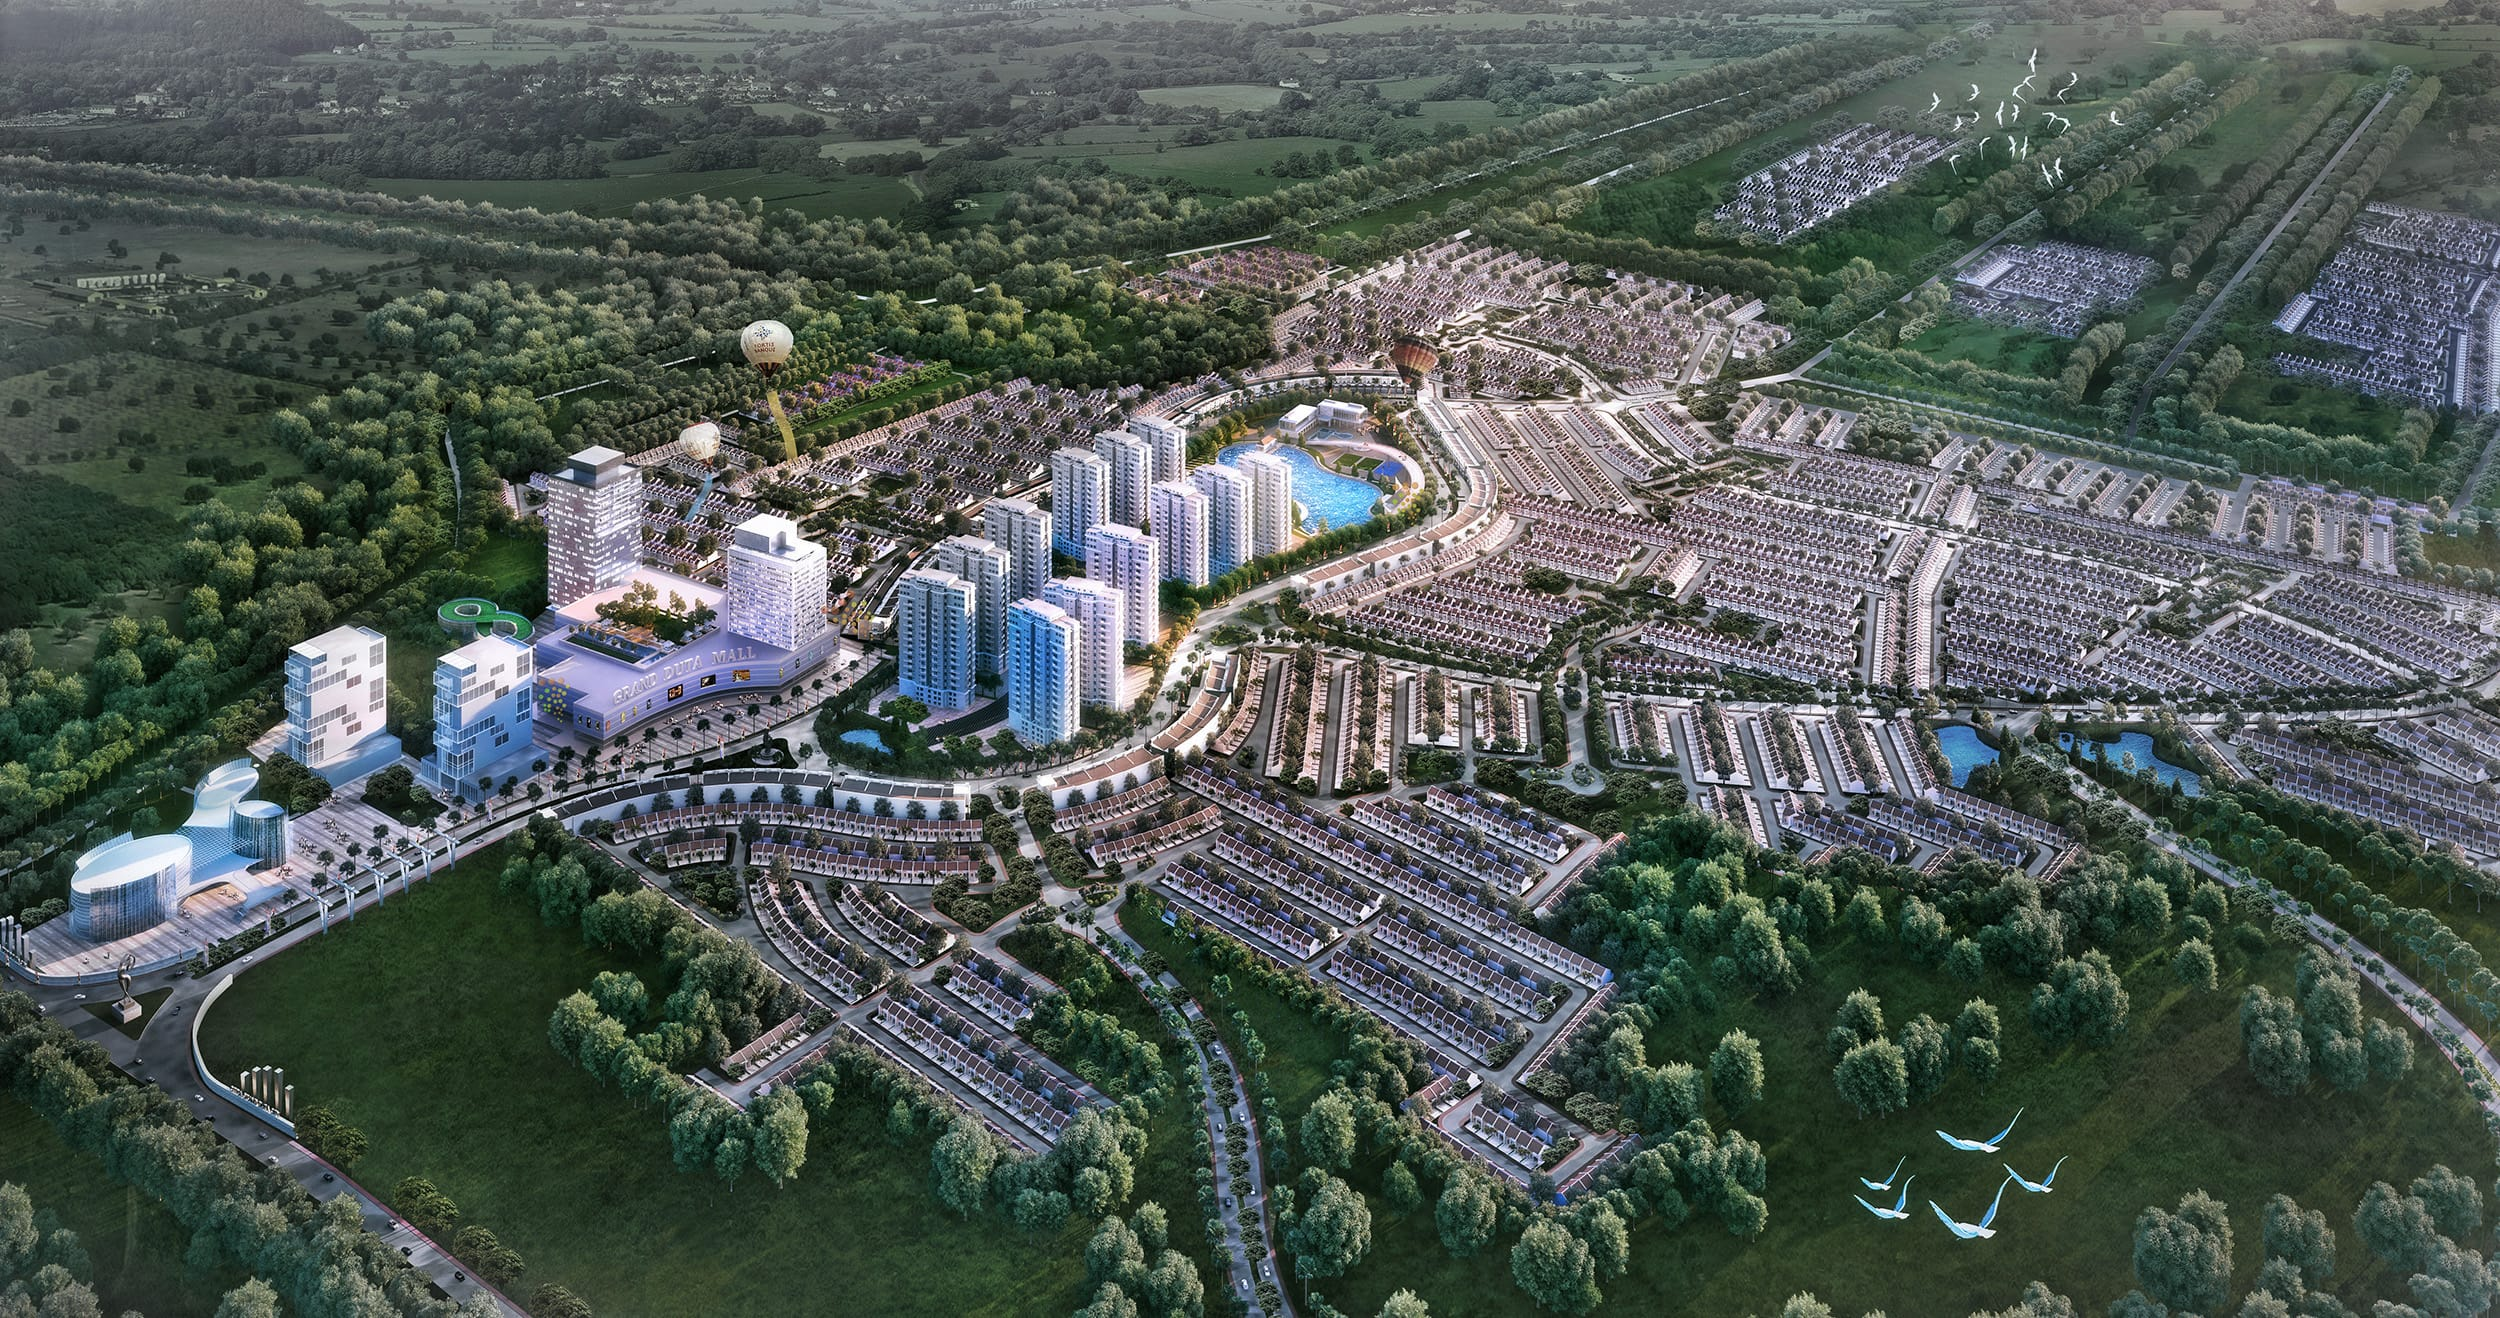 Grand Duta City projects/2-200-hectare-of-new-lifestyle-city